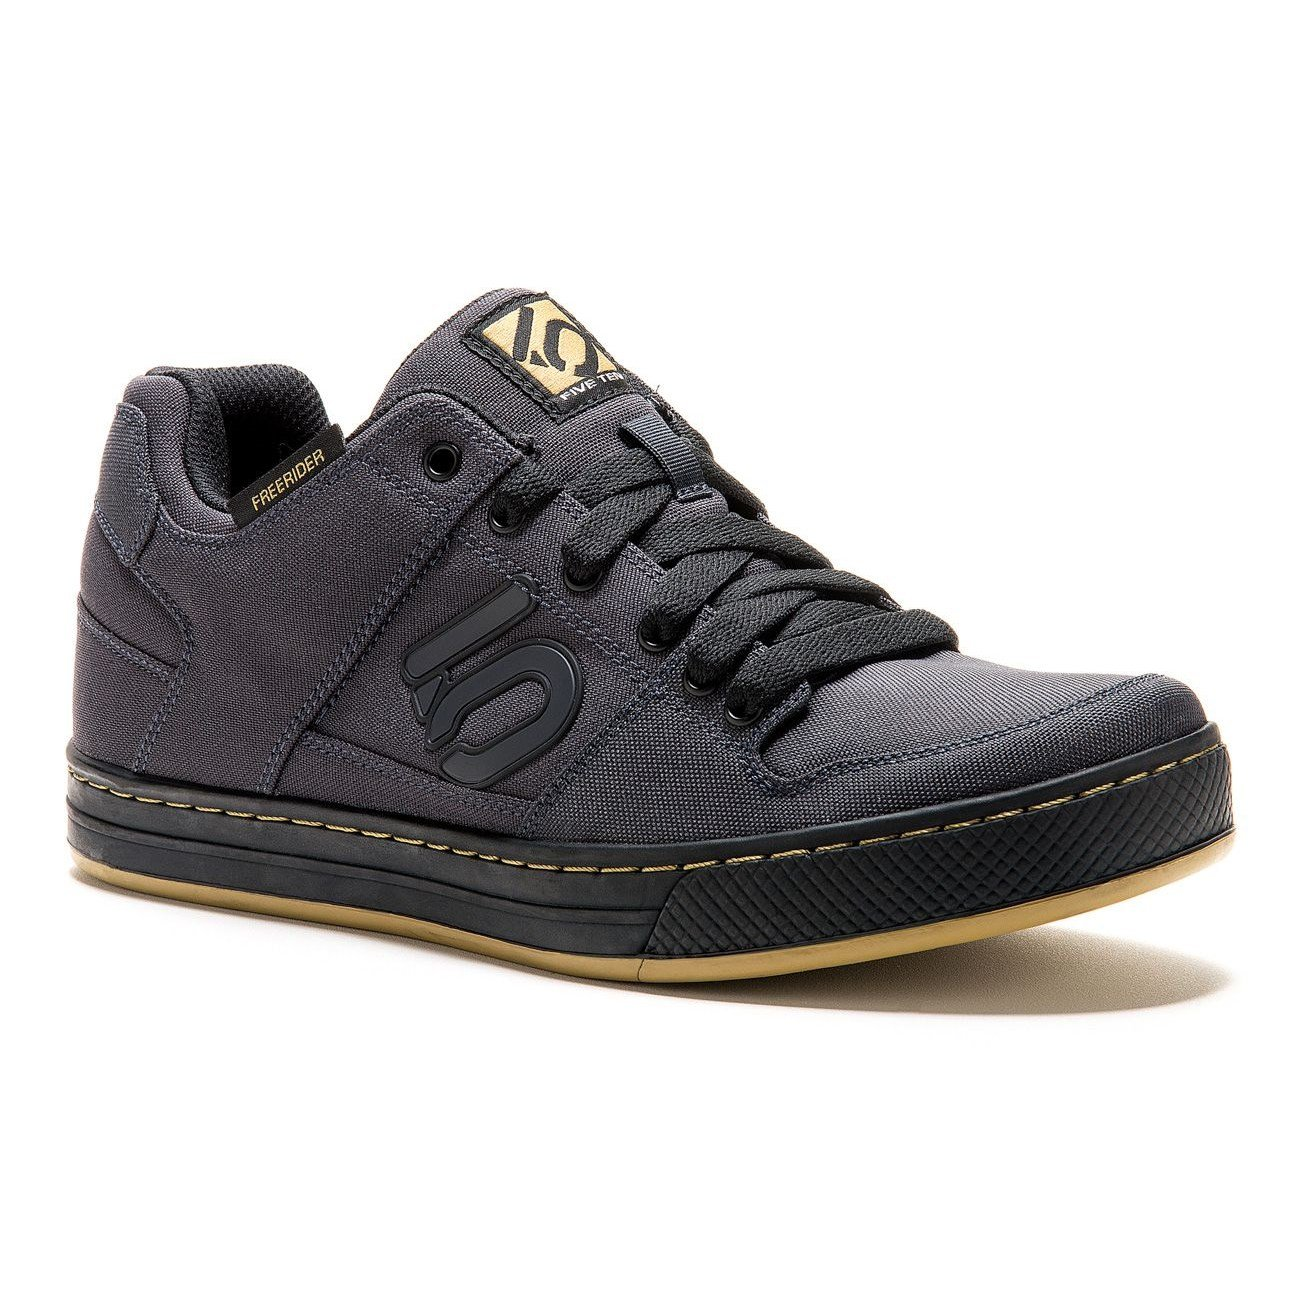 1d5951ff58d7 Five Ten Freerider Canvas Shoes